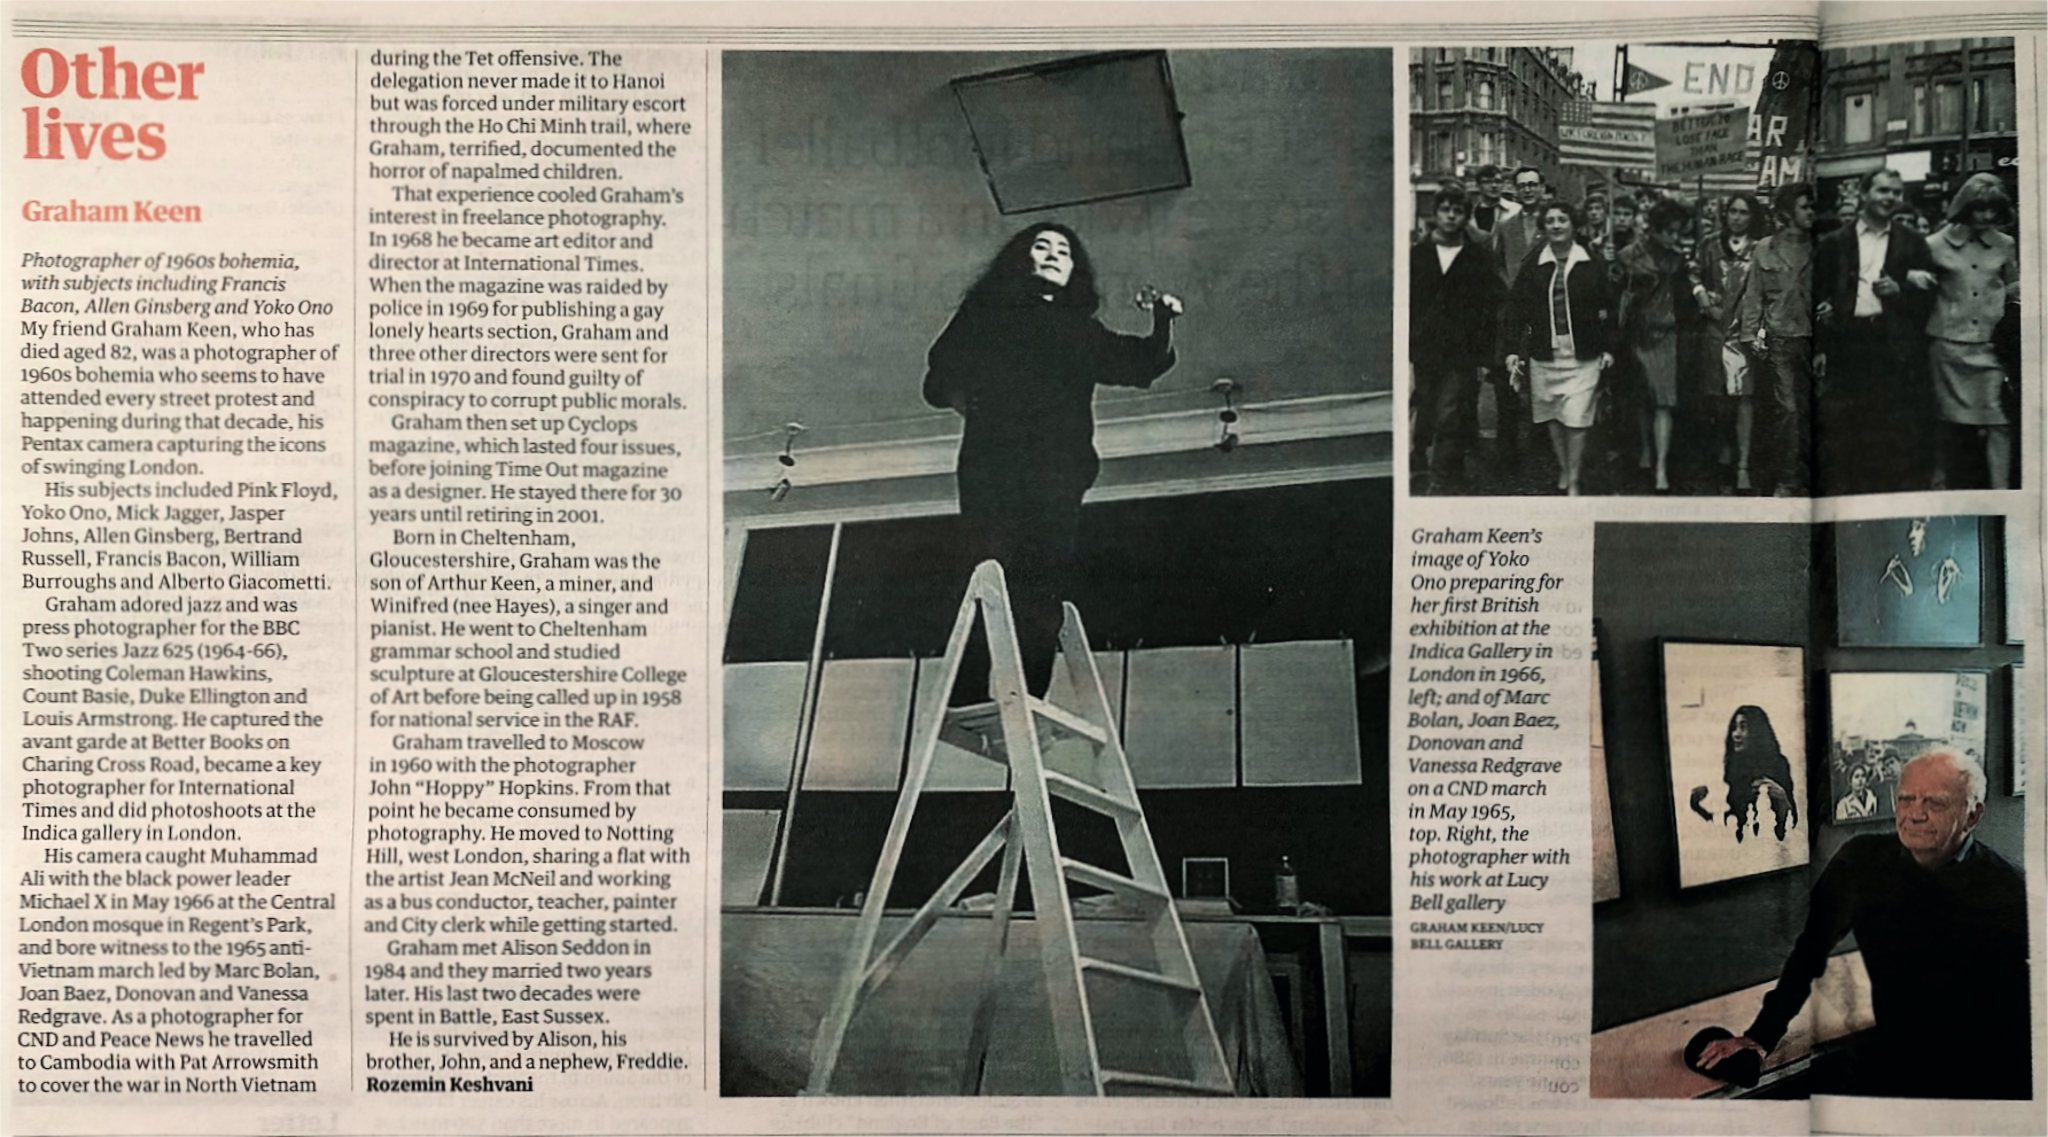 Graham Keen obituary in The Guardian